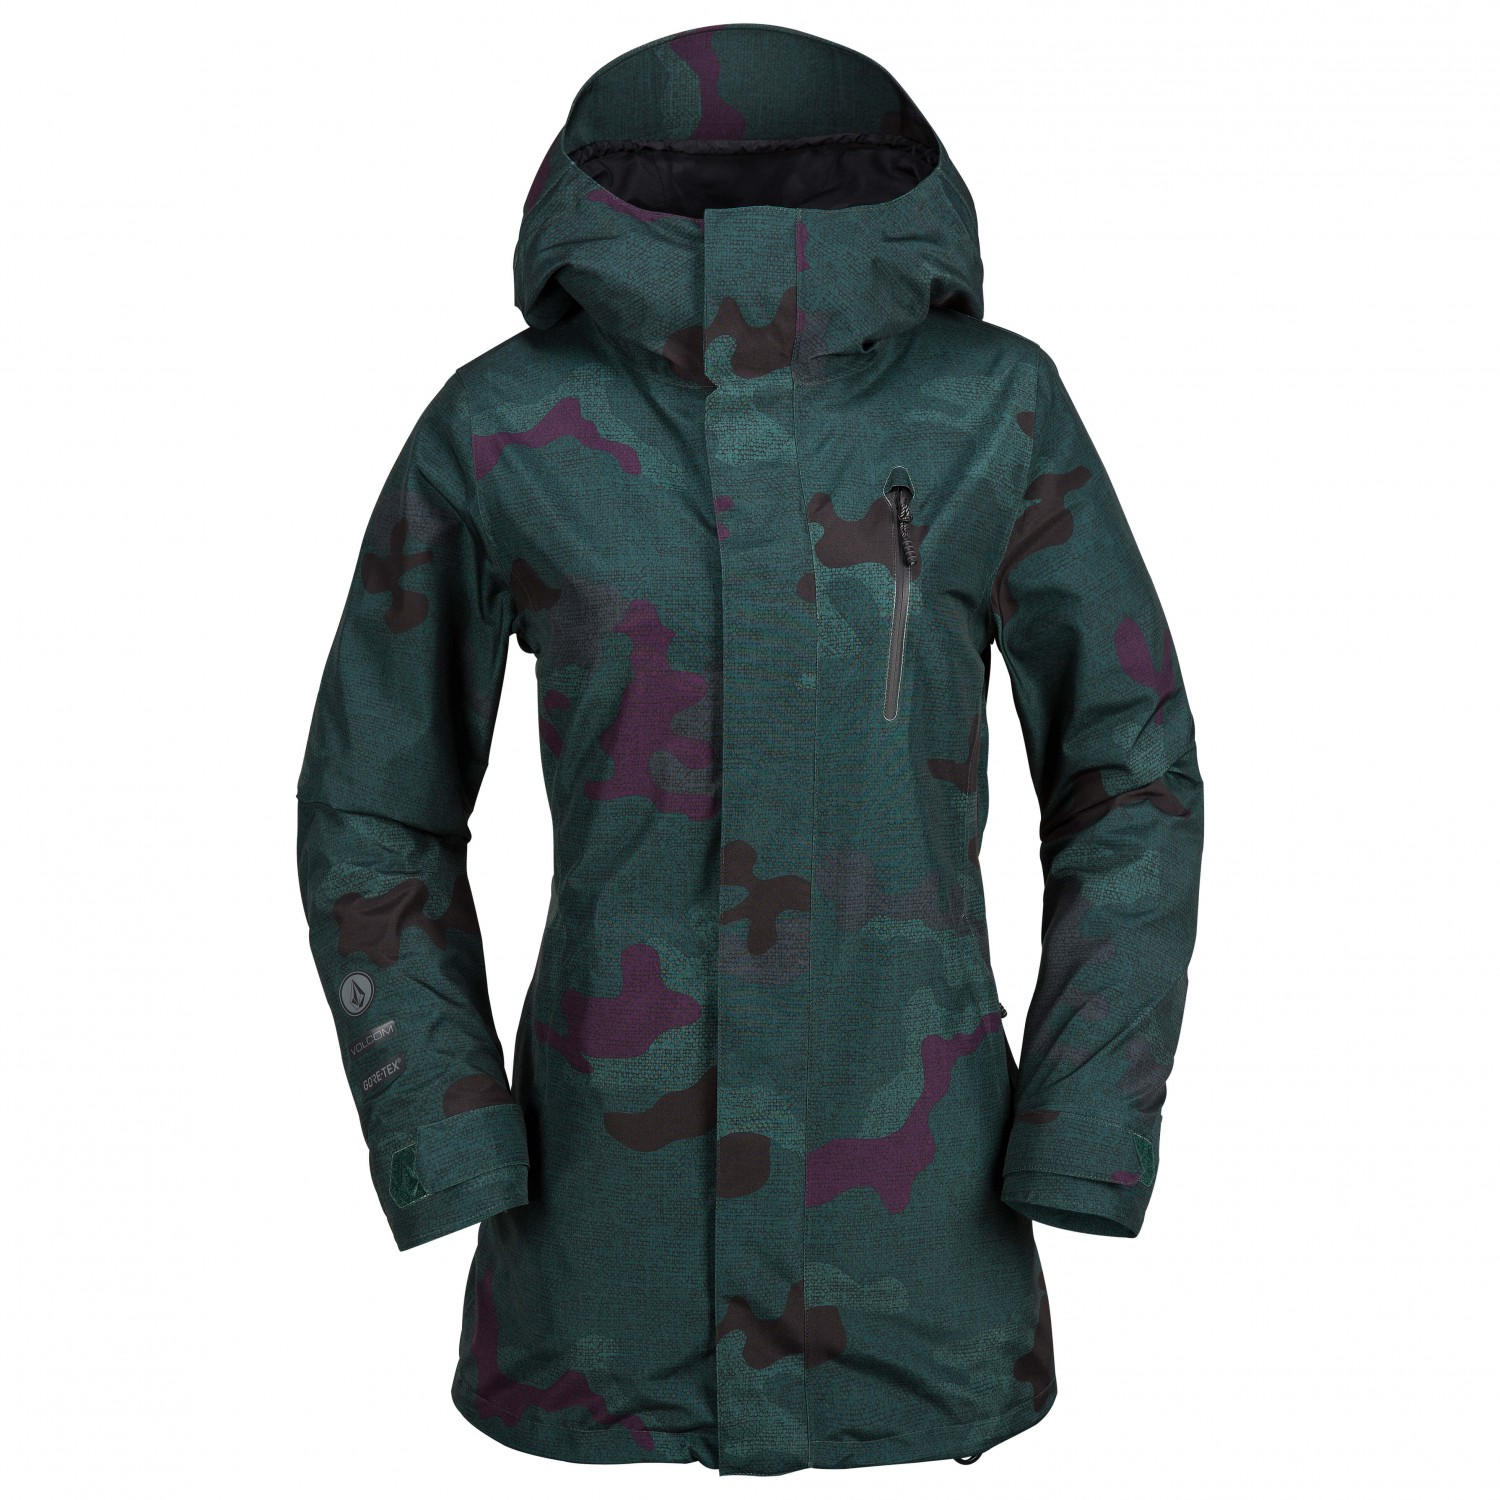 volcom gore tex jacket ski jacket women 39 s buy online. Black Bedroom Furniture Sets. Home Design Ideas